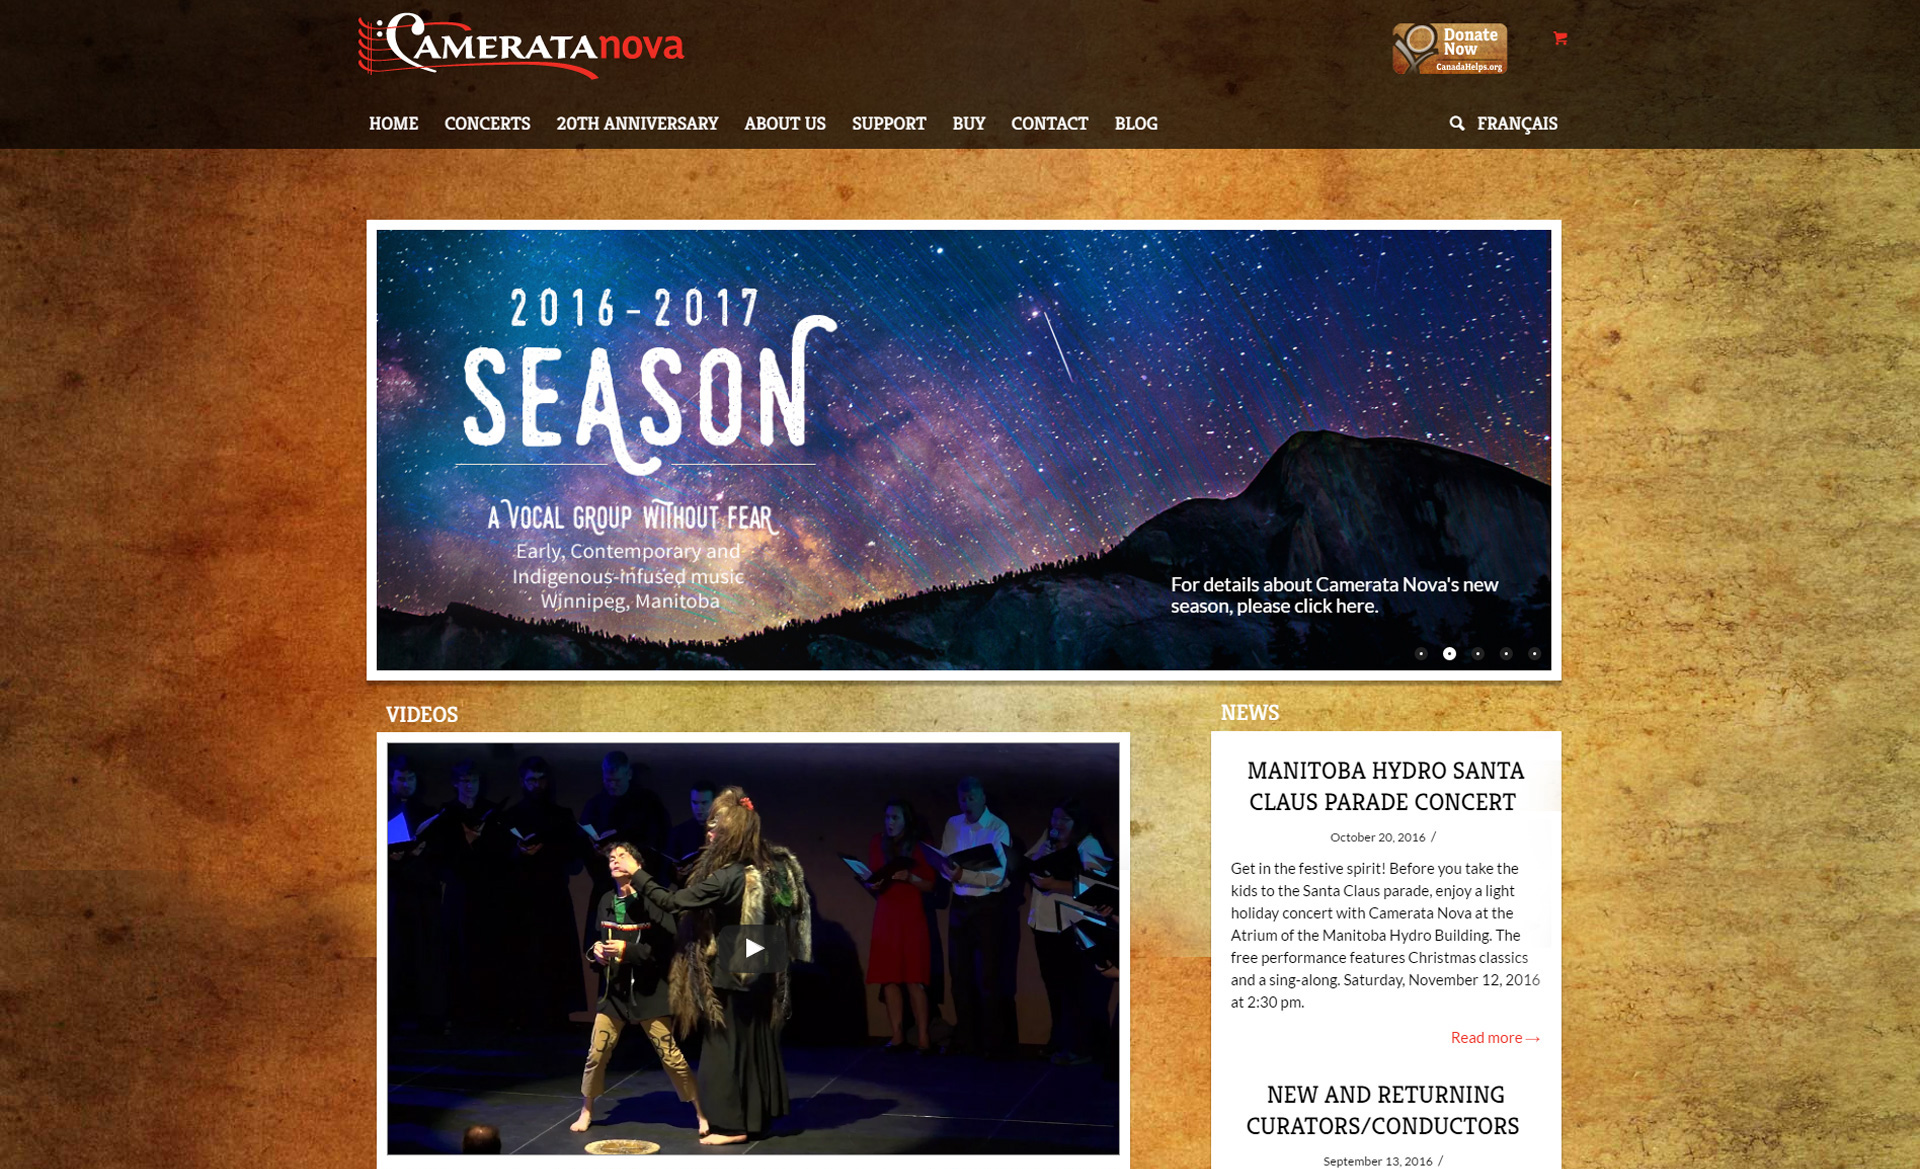 Camerata Nova website home page